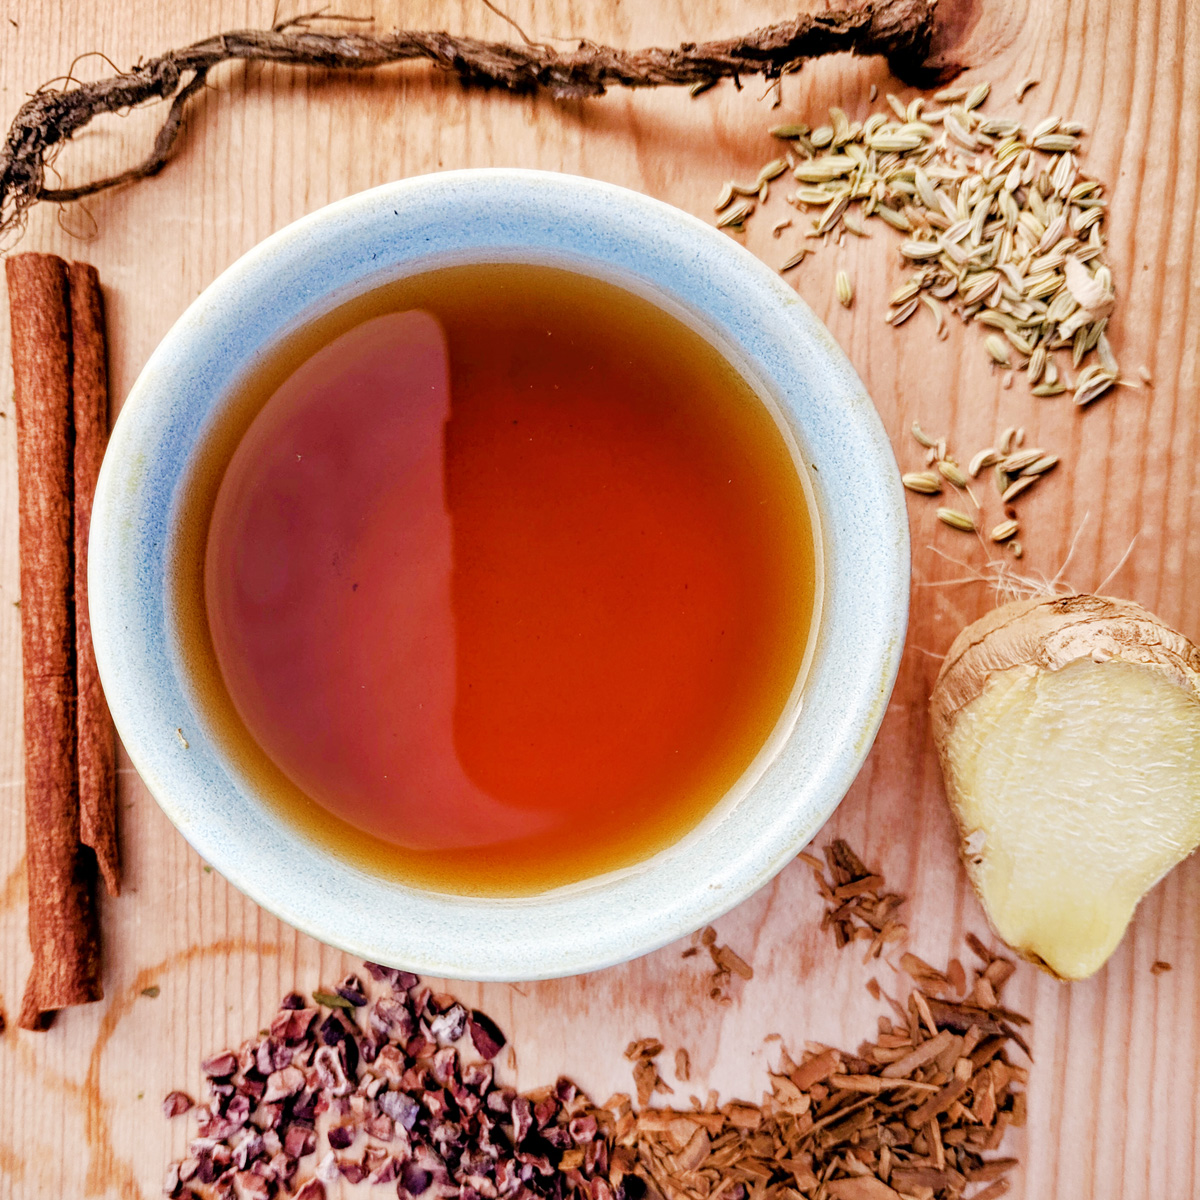 Overhead view of a cup of tea surrounded by various spices and roots such as cinnamon, ginger, and fennel on a wooden table.